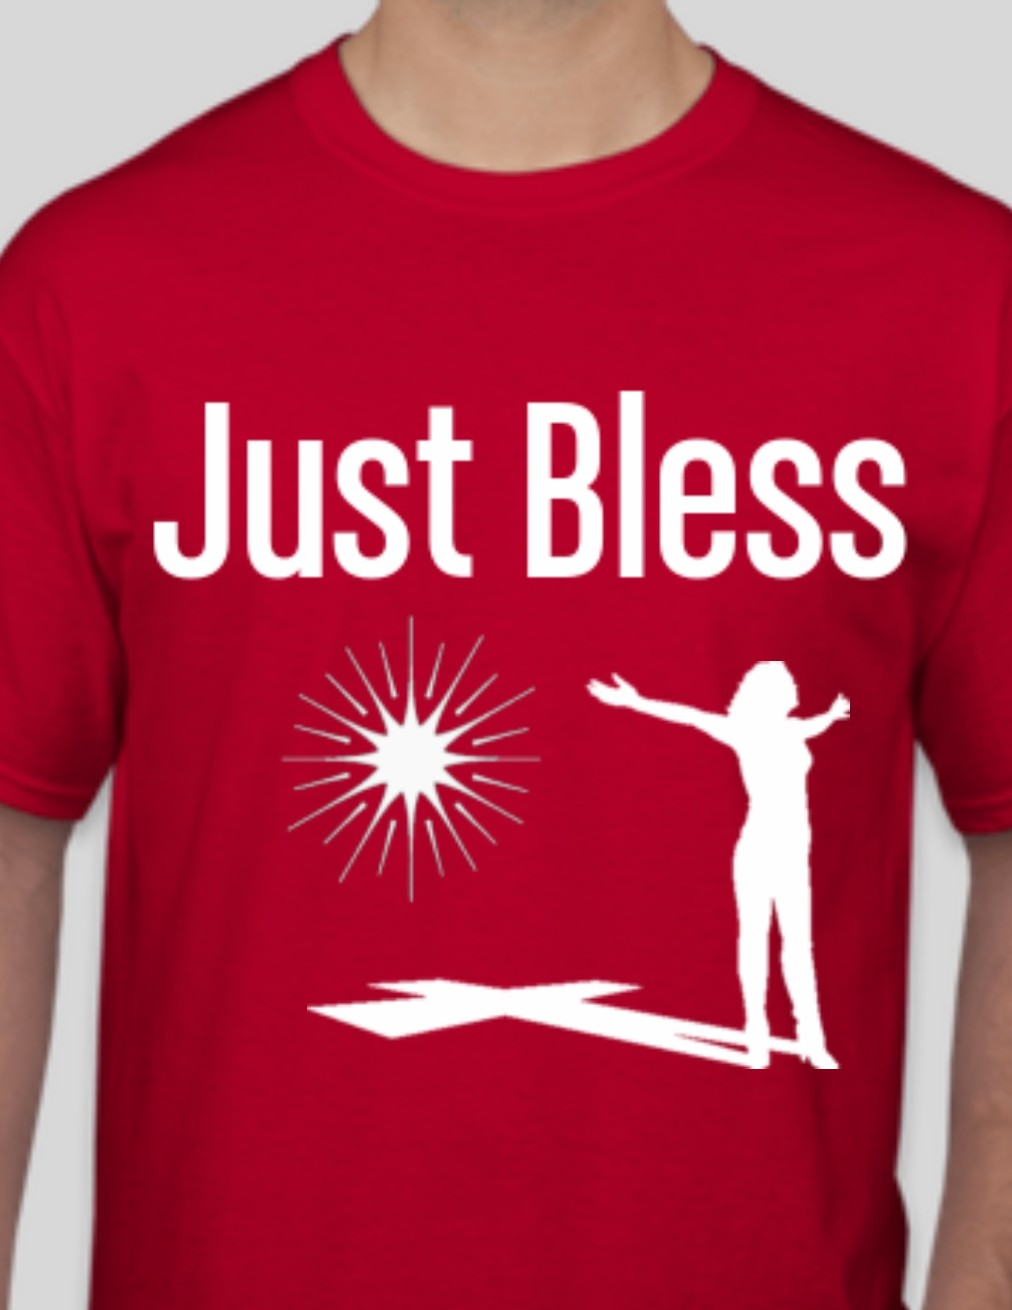 Women's Just Bless Red T-shirt